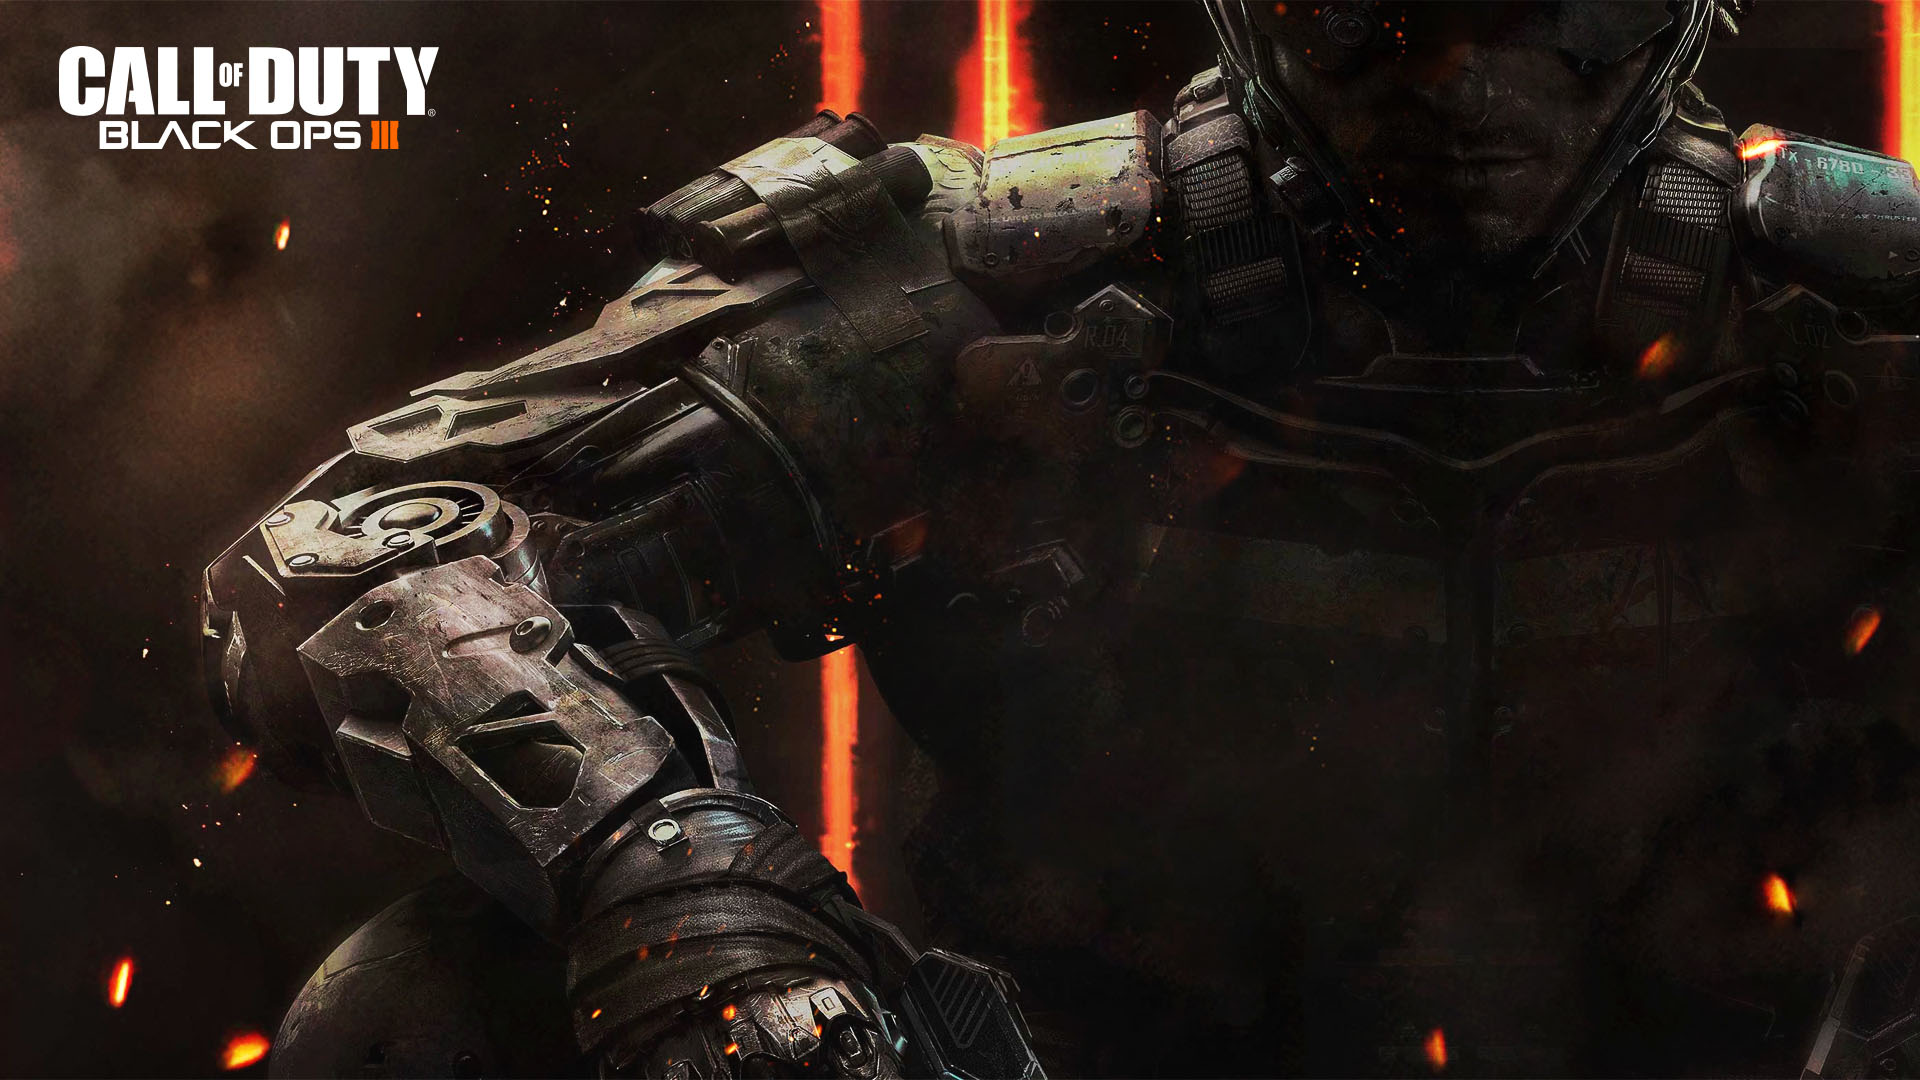 Call Of Duty Black Ops 3 Hd Wallpapers: 24+ Call Of Duty Black Ops 3 Wallpapers HD Free Download